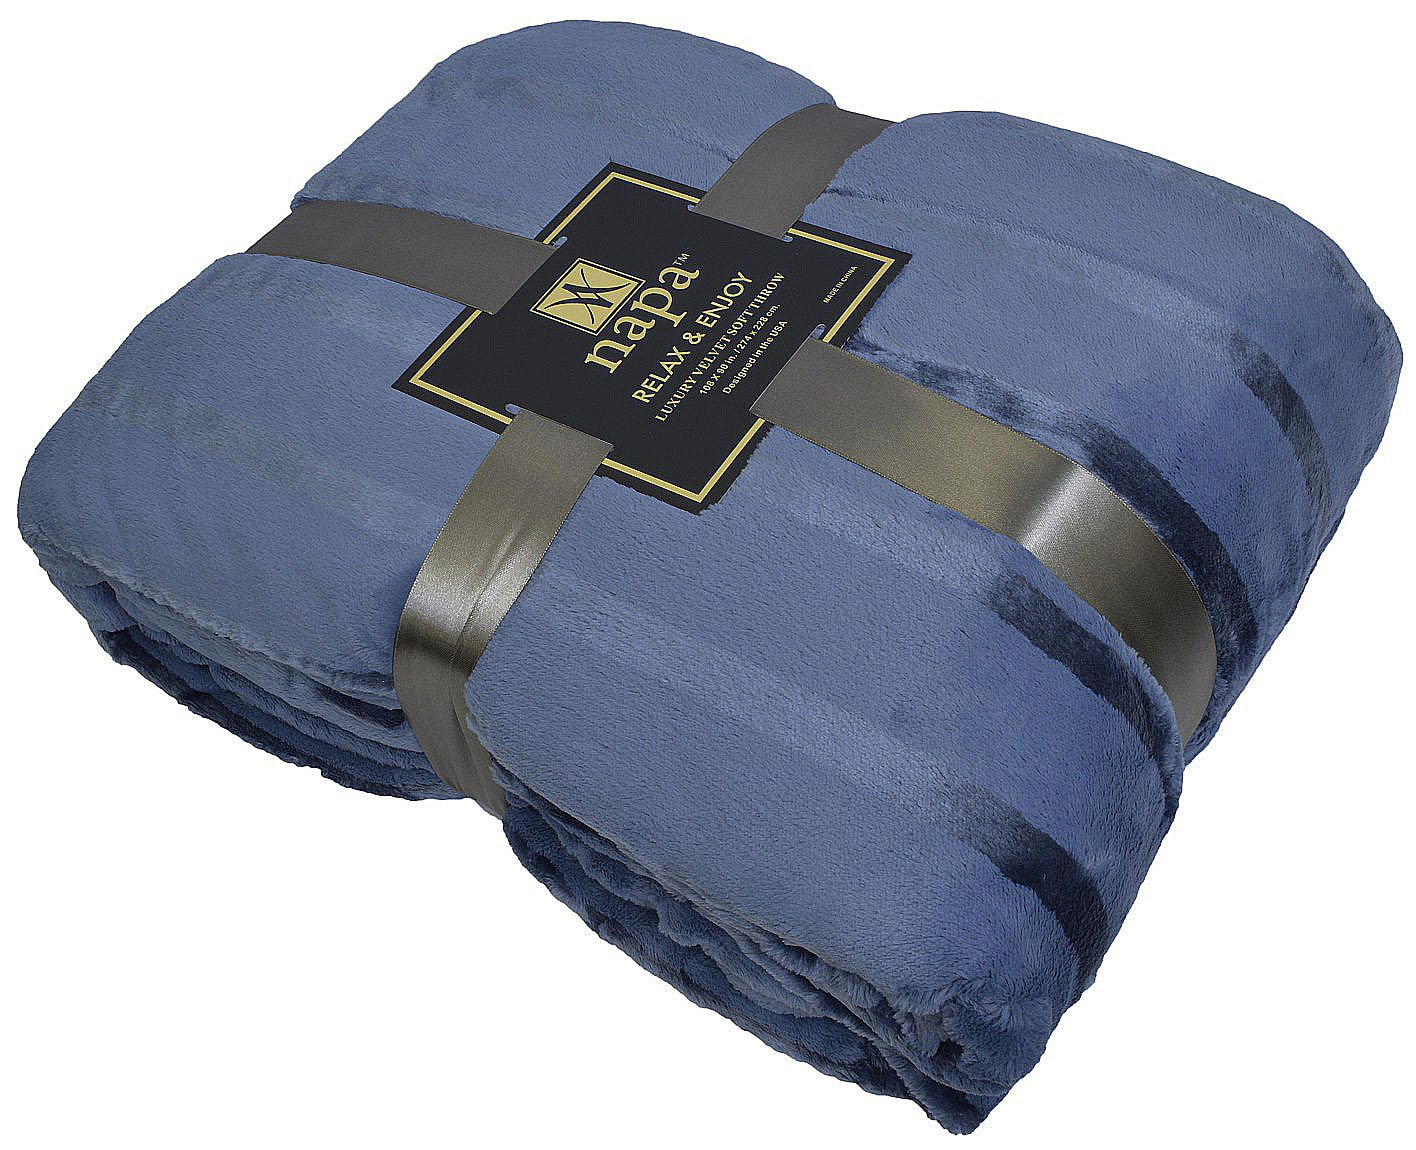 Napa Plush Cashmere Throw Blanket Dark Blue, Twin 70''x90'', Striped Reversible Velvet Luxury Fleece Warm Bed Couch Blanket, Super Soft and Cozy